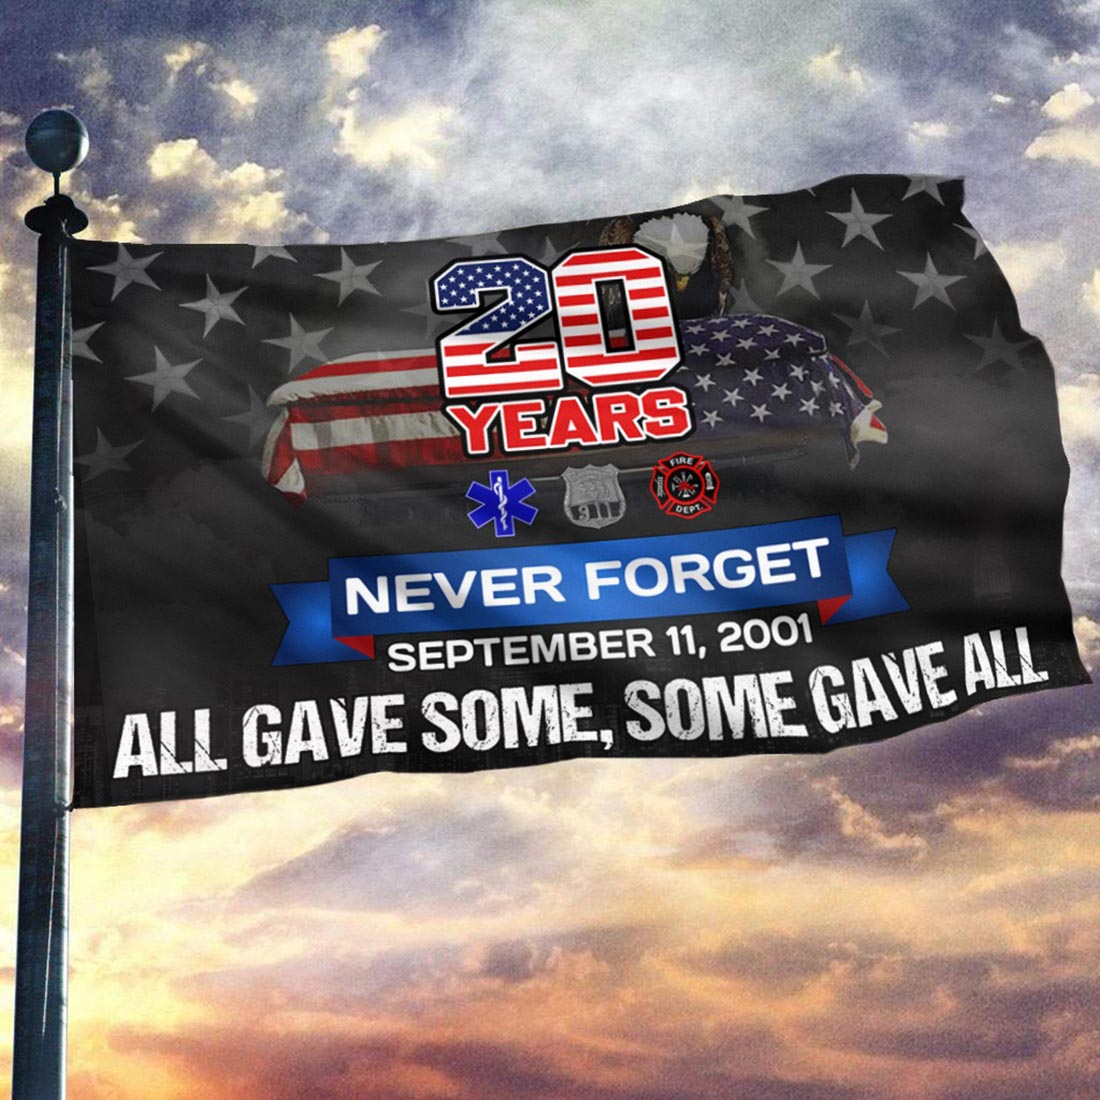 20 Years - 9/11 - All Gave Some Some Gave All Flag